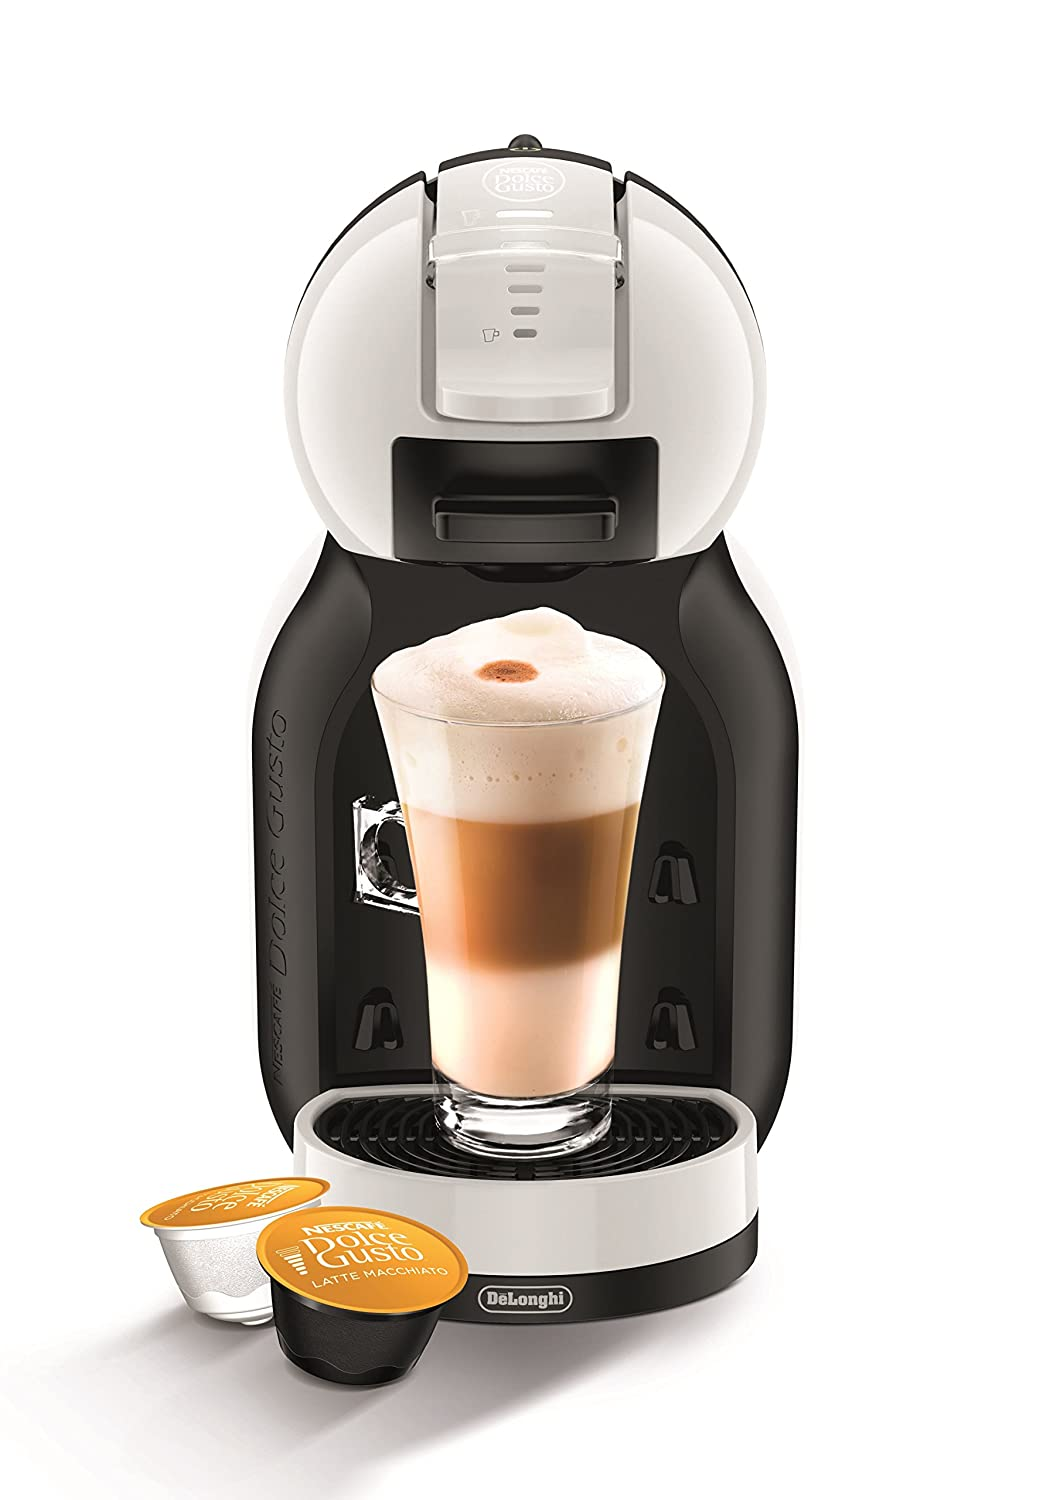 nescafe edg305 wb dolce gusto mini me coffee capsule machine by de 39 longhi ebay. Black Bedroom Furniture Sets. Home Design Ideas